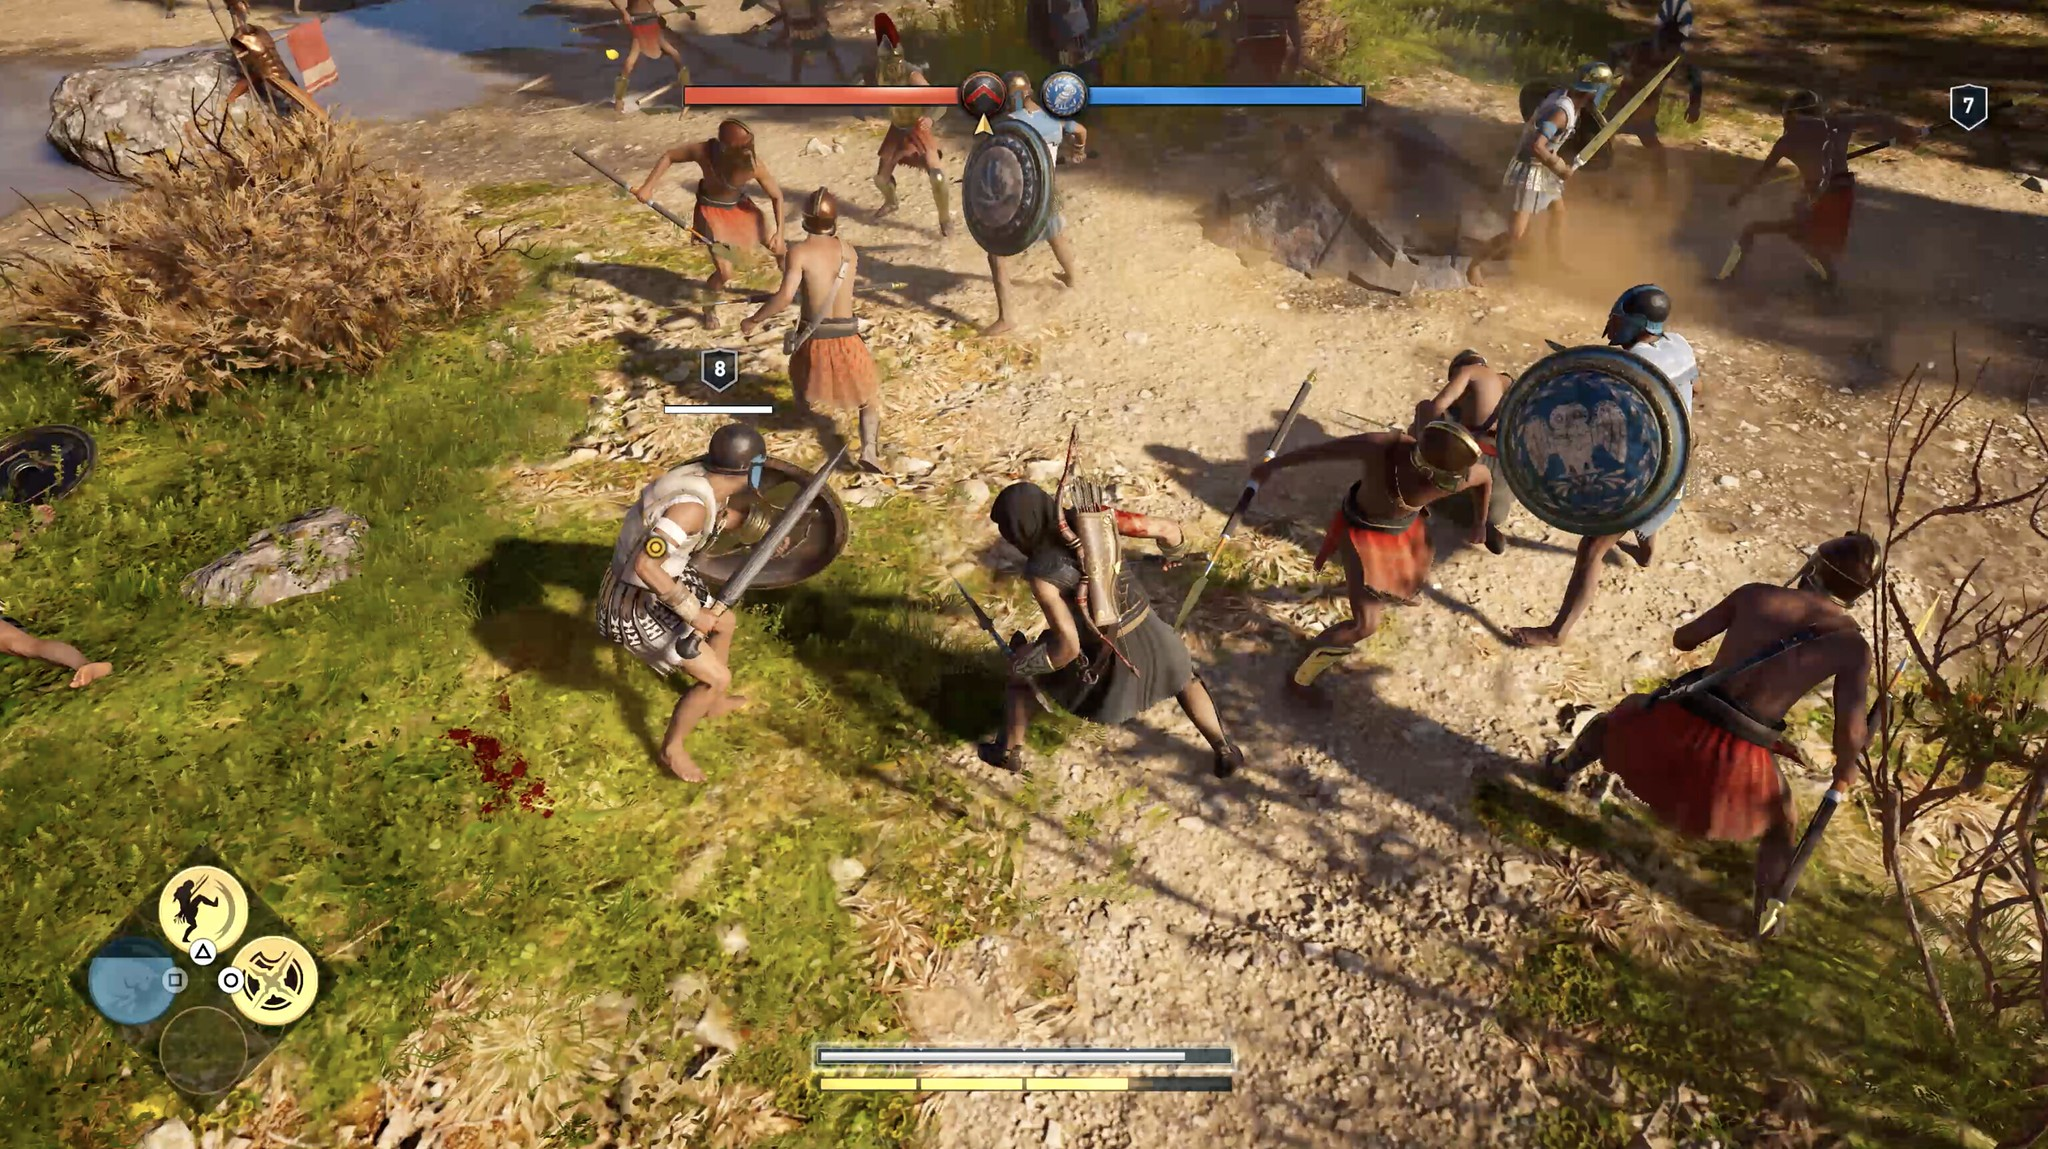 Editors' Choice: Why Assassin's Creed Odyssey